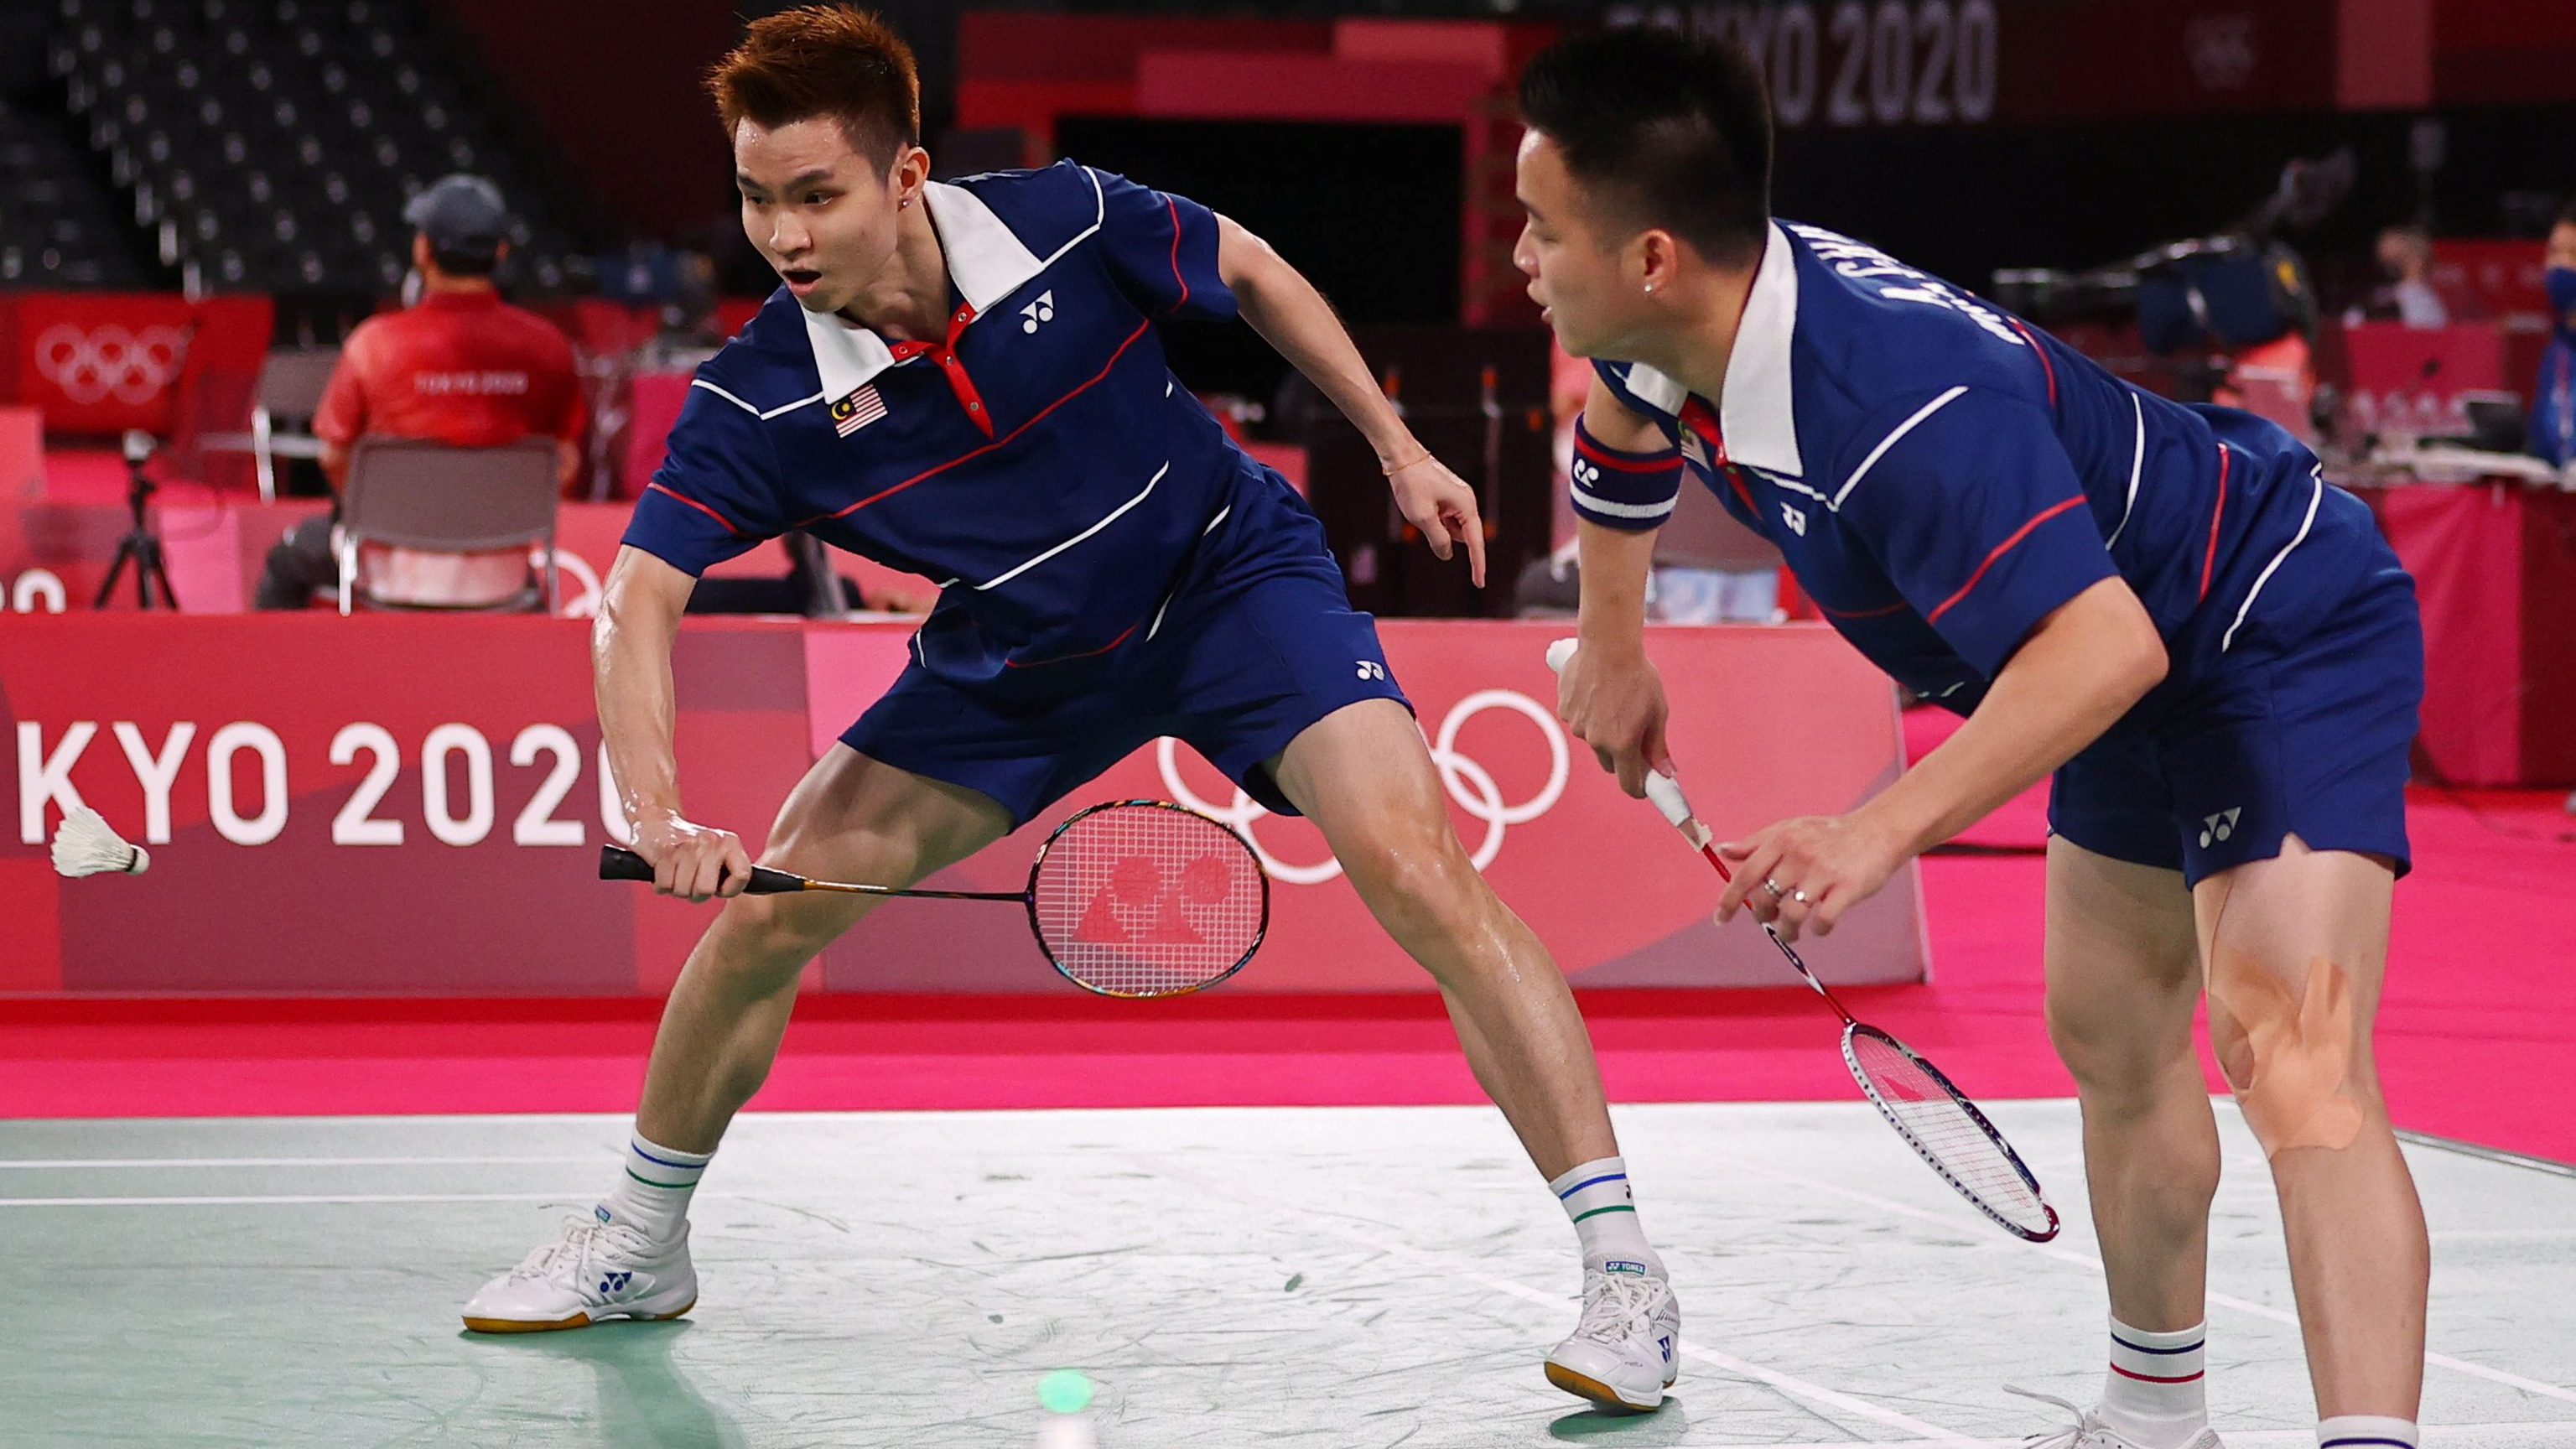 Tokyo 2020 Olympics - Badminton - Men's Doubles - Quarterfinal - MFS - Musashino Forest Sport Plaza, Tokyo, Japan – July 29, 2021. Soh Wooi Yik of Malaysia and Aaron Chia of Malaysia in action during the match against Marcus Fernaldi Gideon of Indonesia and Kevin Sanjaya Sukamuljo of Indonesia. REUTERS/Hamad I Mohammed